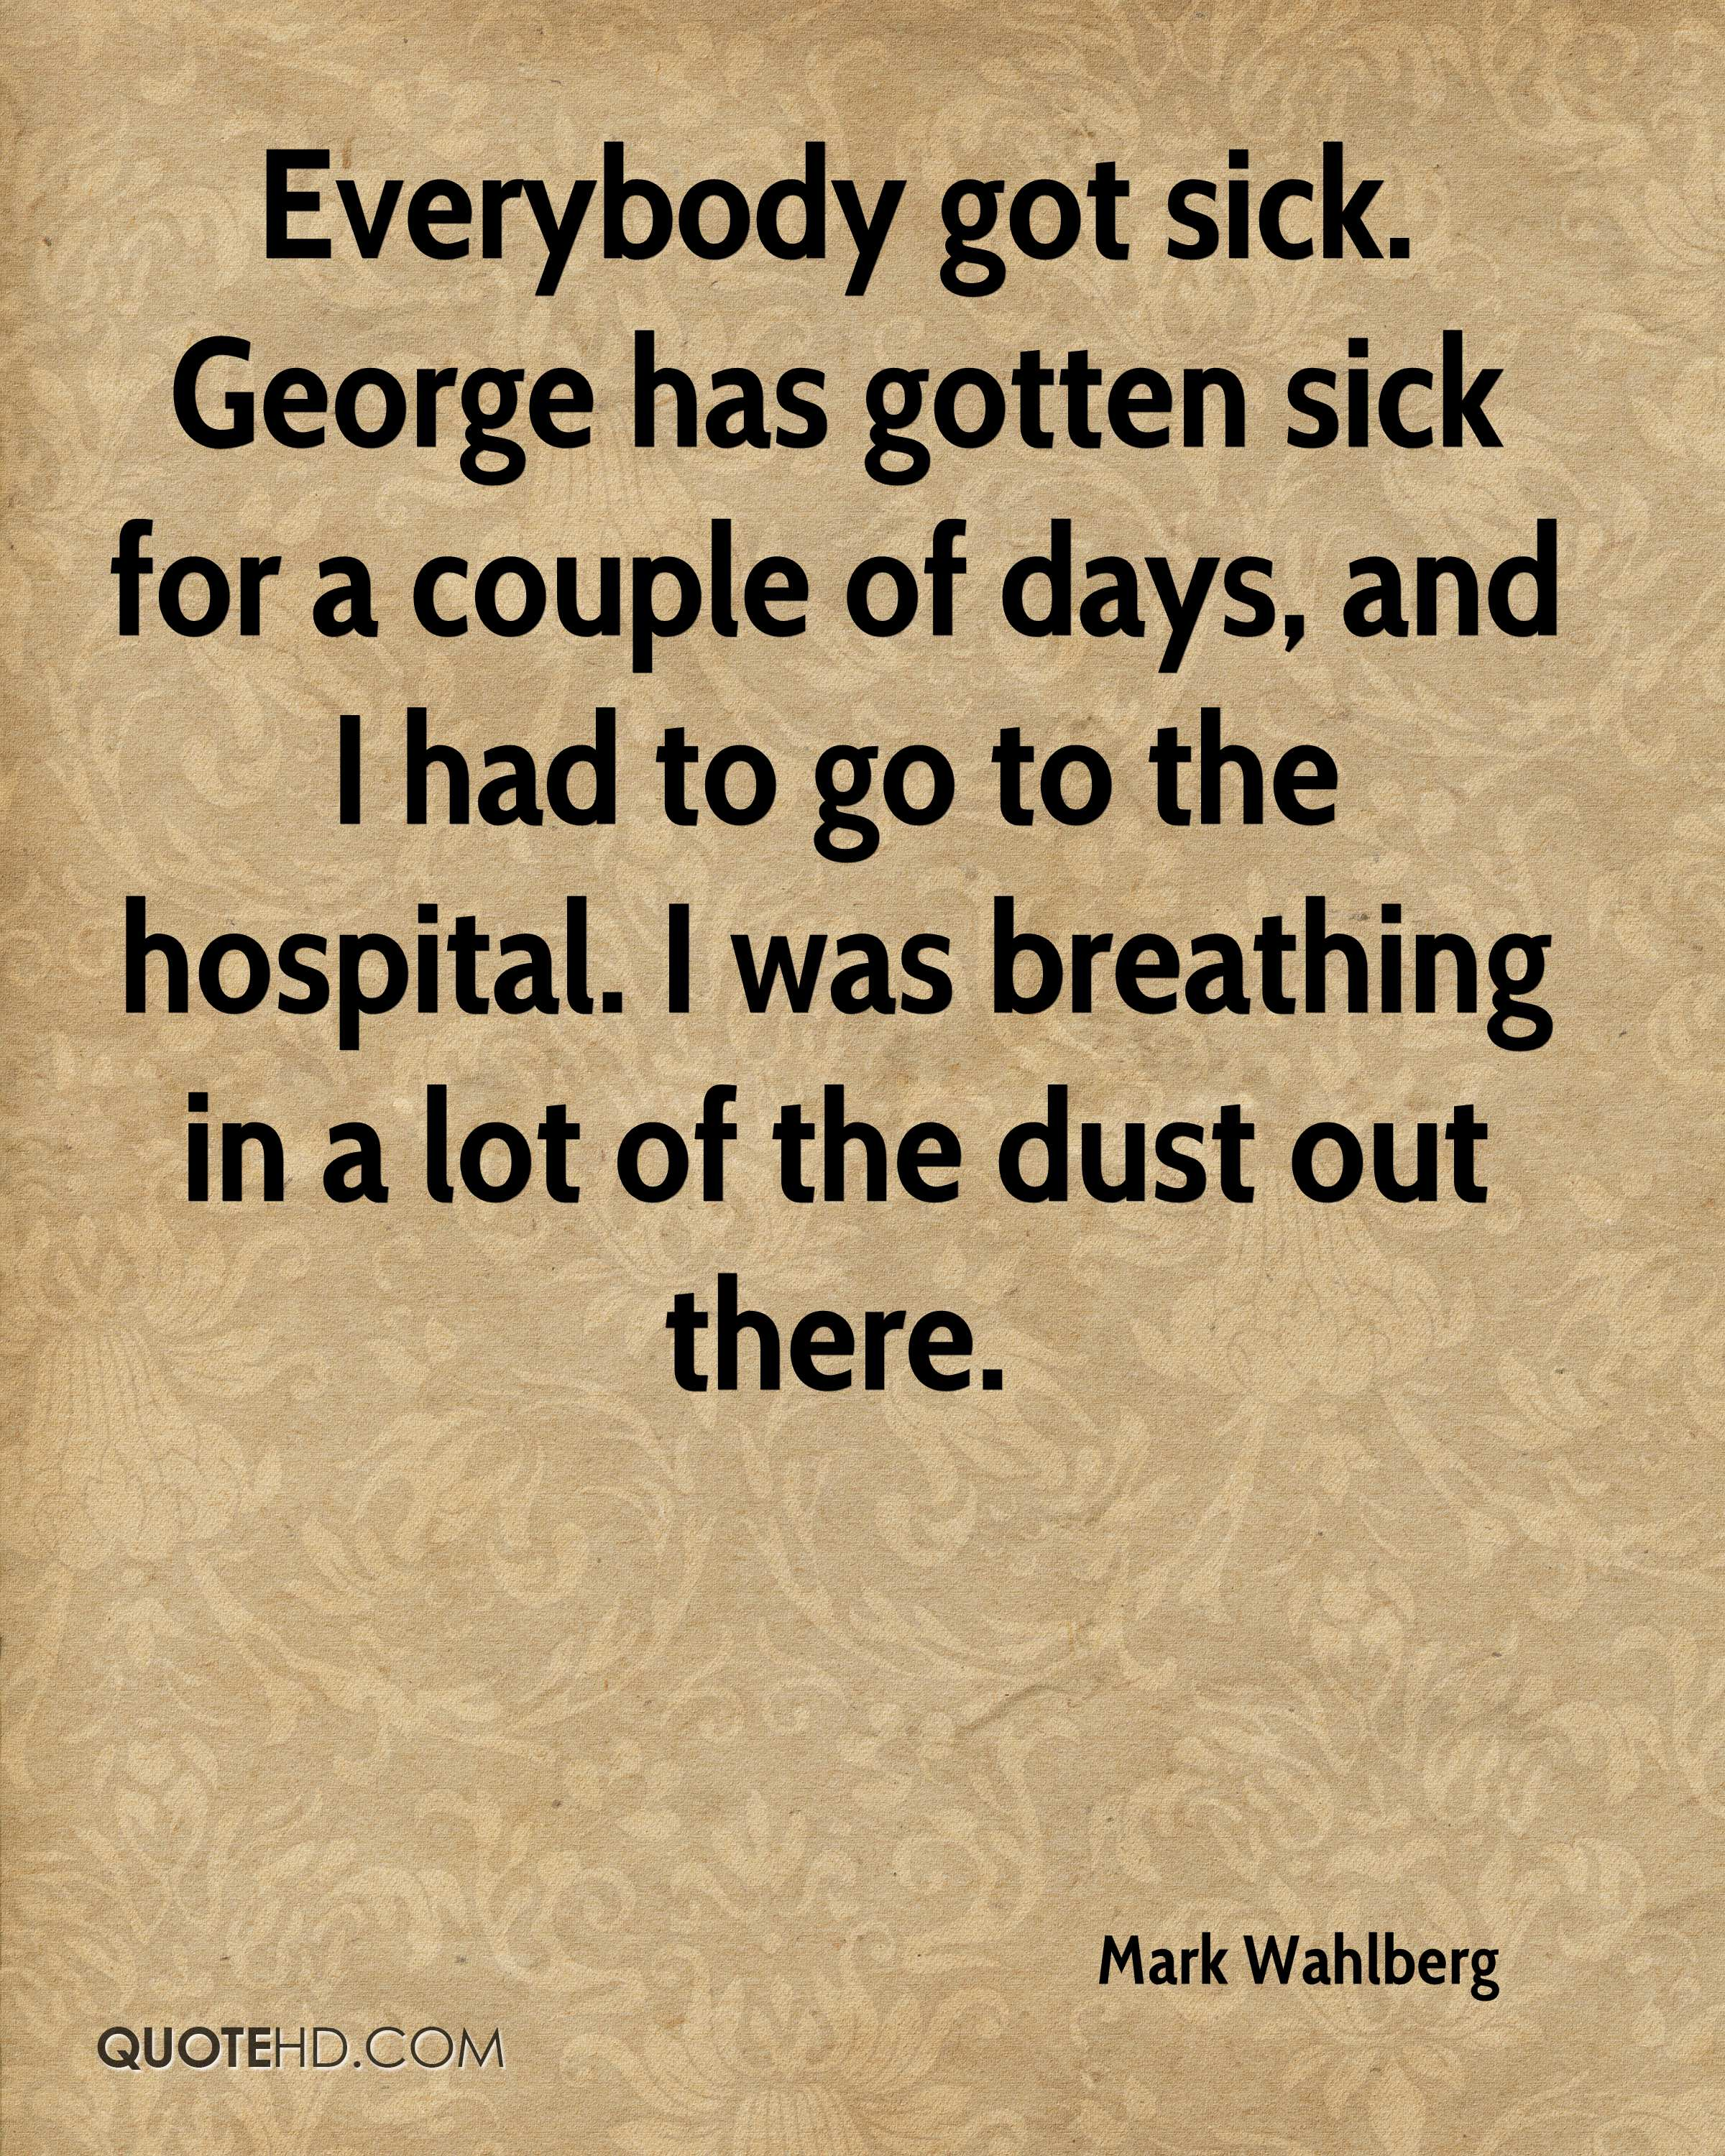 Everybody got sick. George has gotten sick for a couple of days, and I had to go to the hospital. I was breathing in a lot of the dust out there.